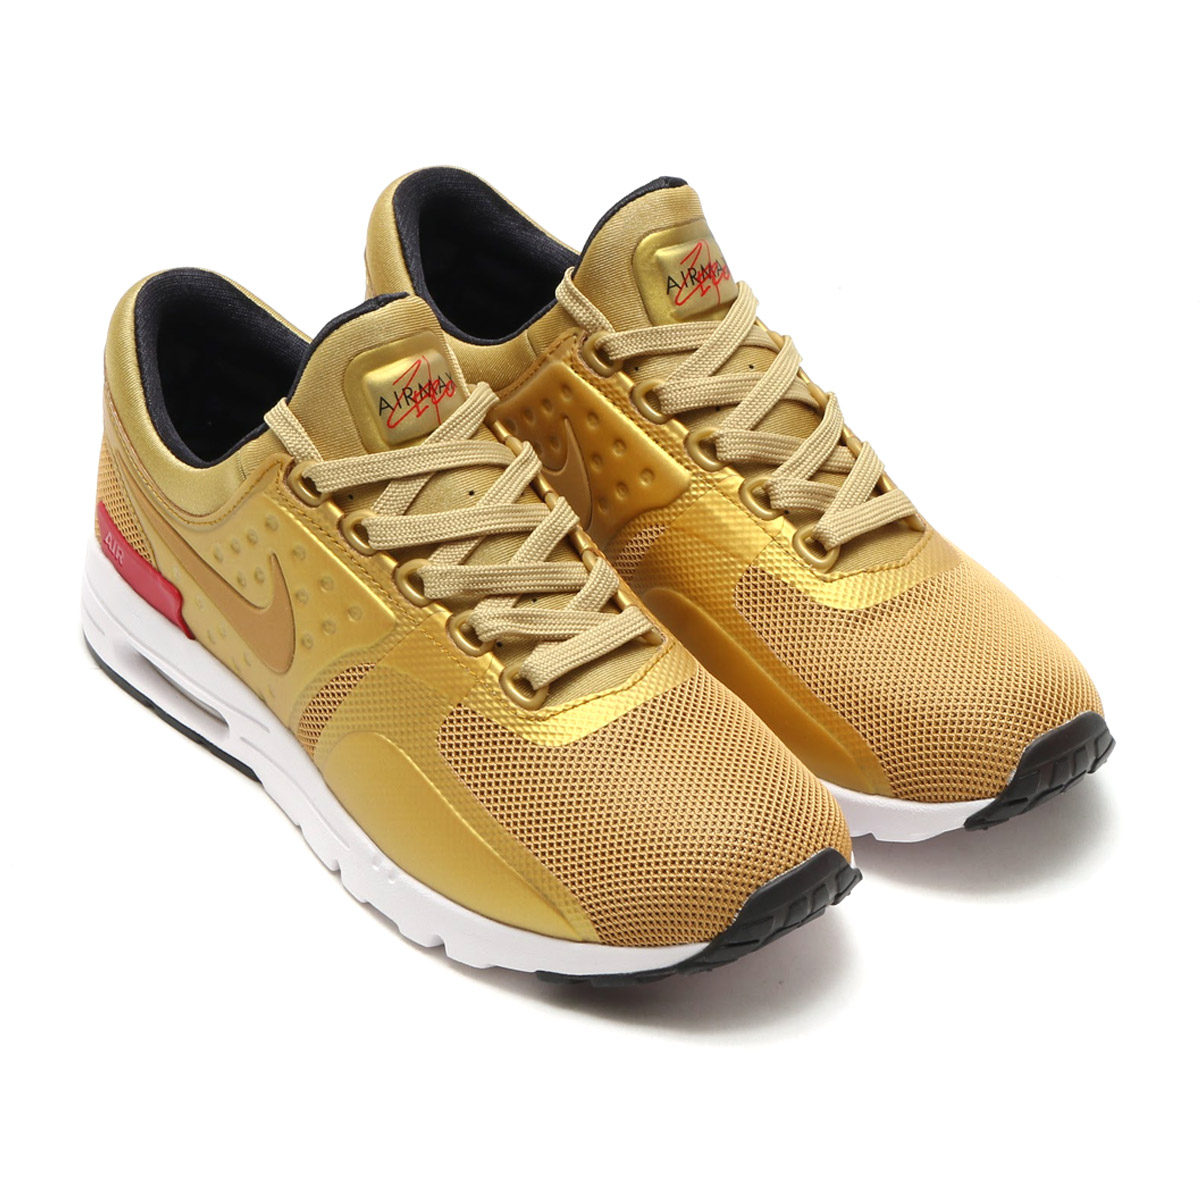 Other AIR MAX (Air Max) is this